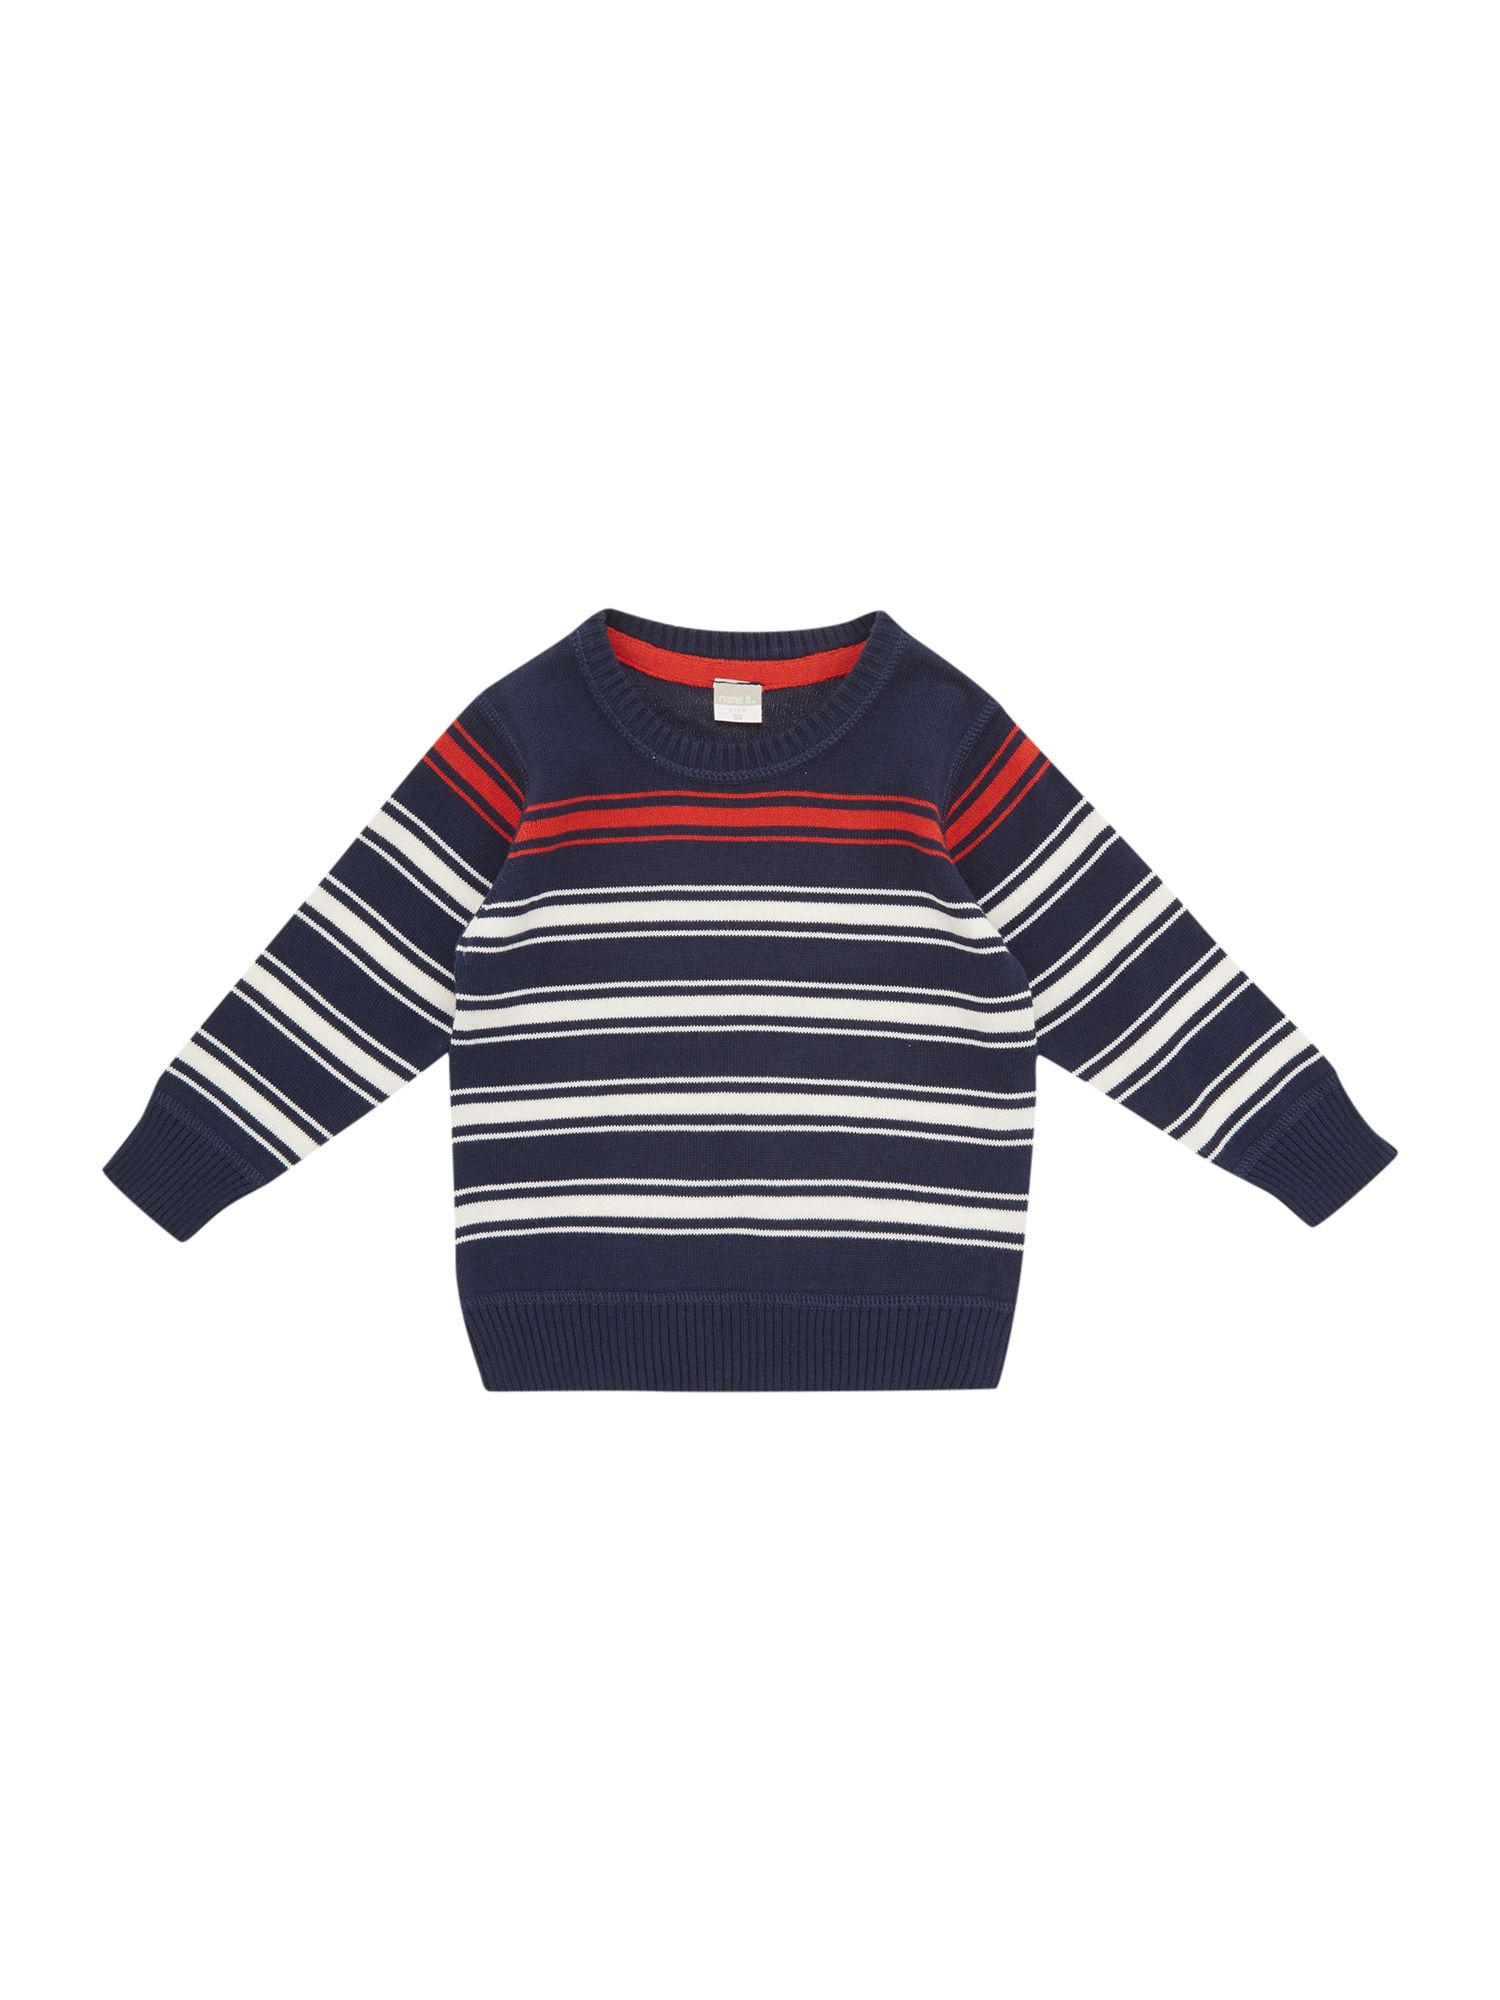 Boys stripe knitted jumper